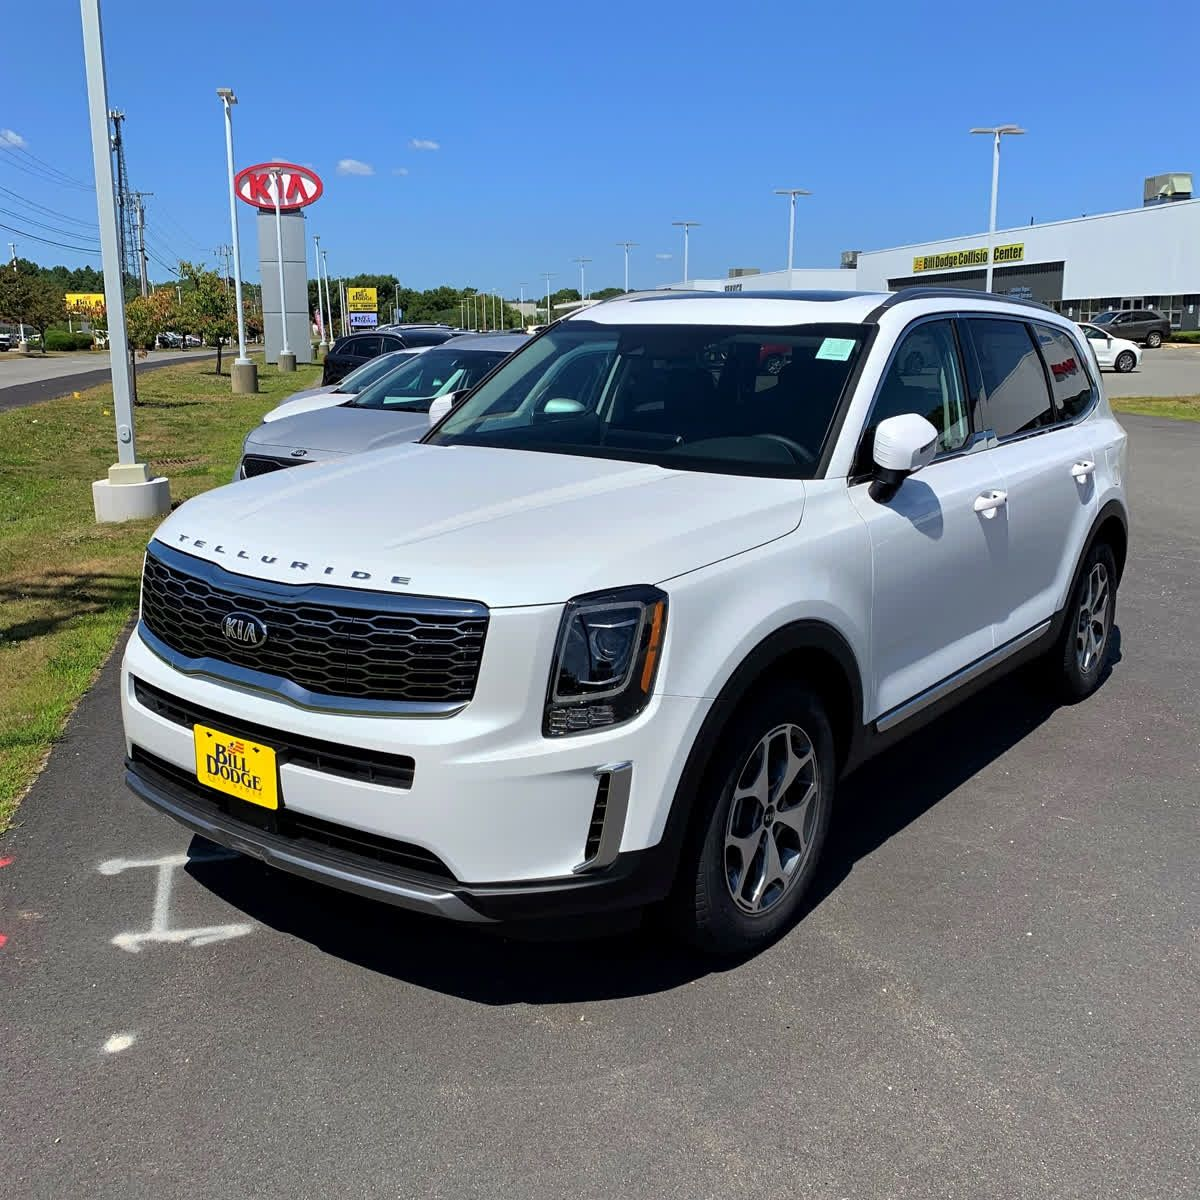 2020 Kia Telluride In The Highly Sought After Snow White Pearl These Beauties Do Not Stay On Our Lot For More Than A Few Days Kia Pearl White Telluride